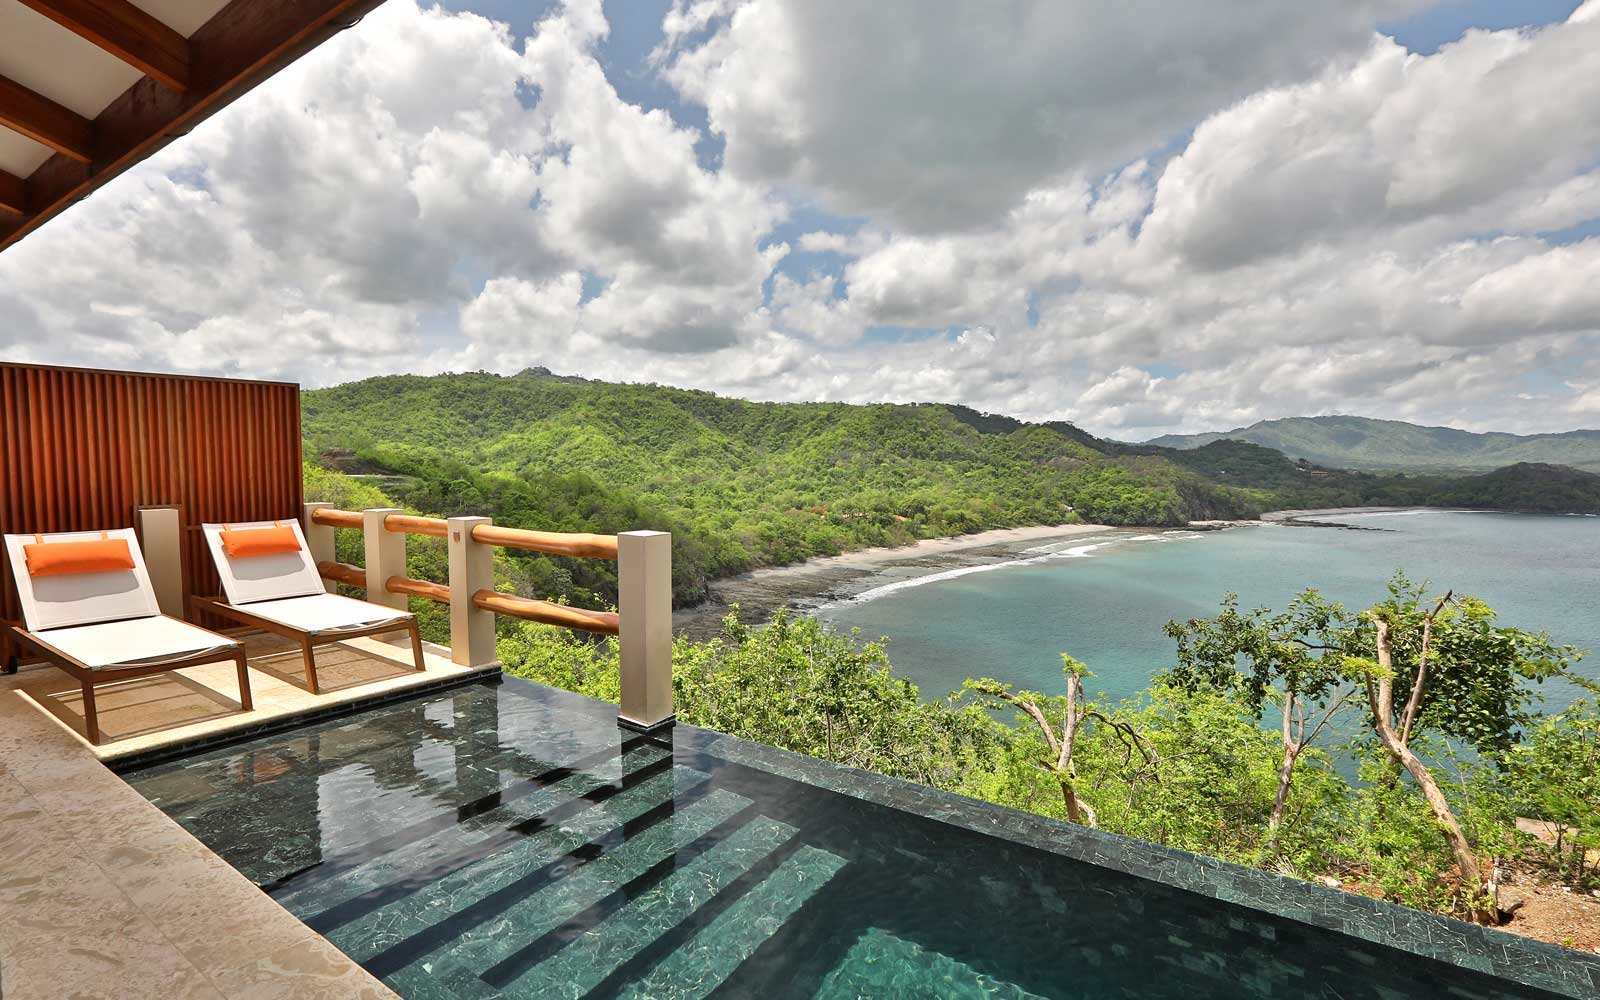 Enjoy 35% off a Stay At This Adults-Only Boutique Resort on Costa Rica's Guanacaste Coast